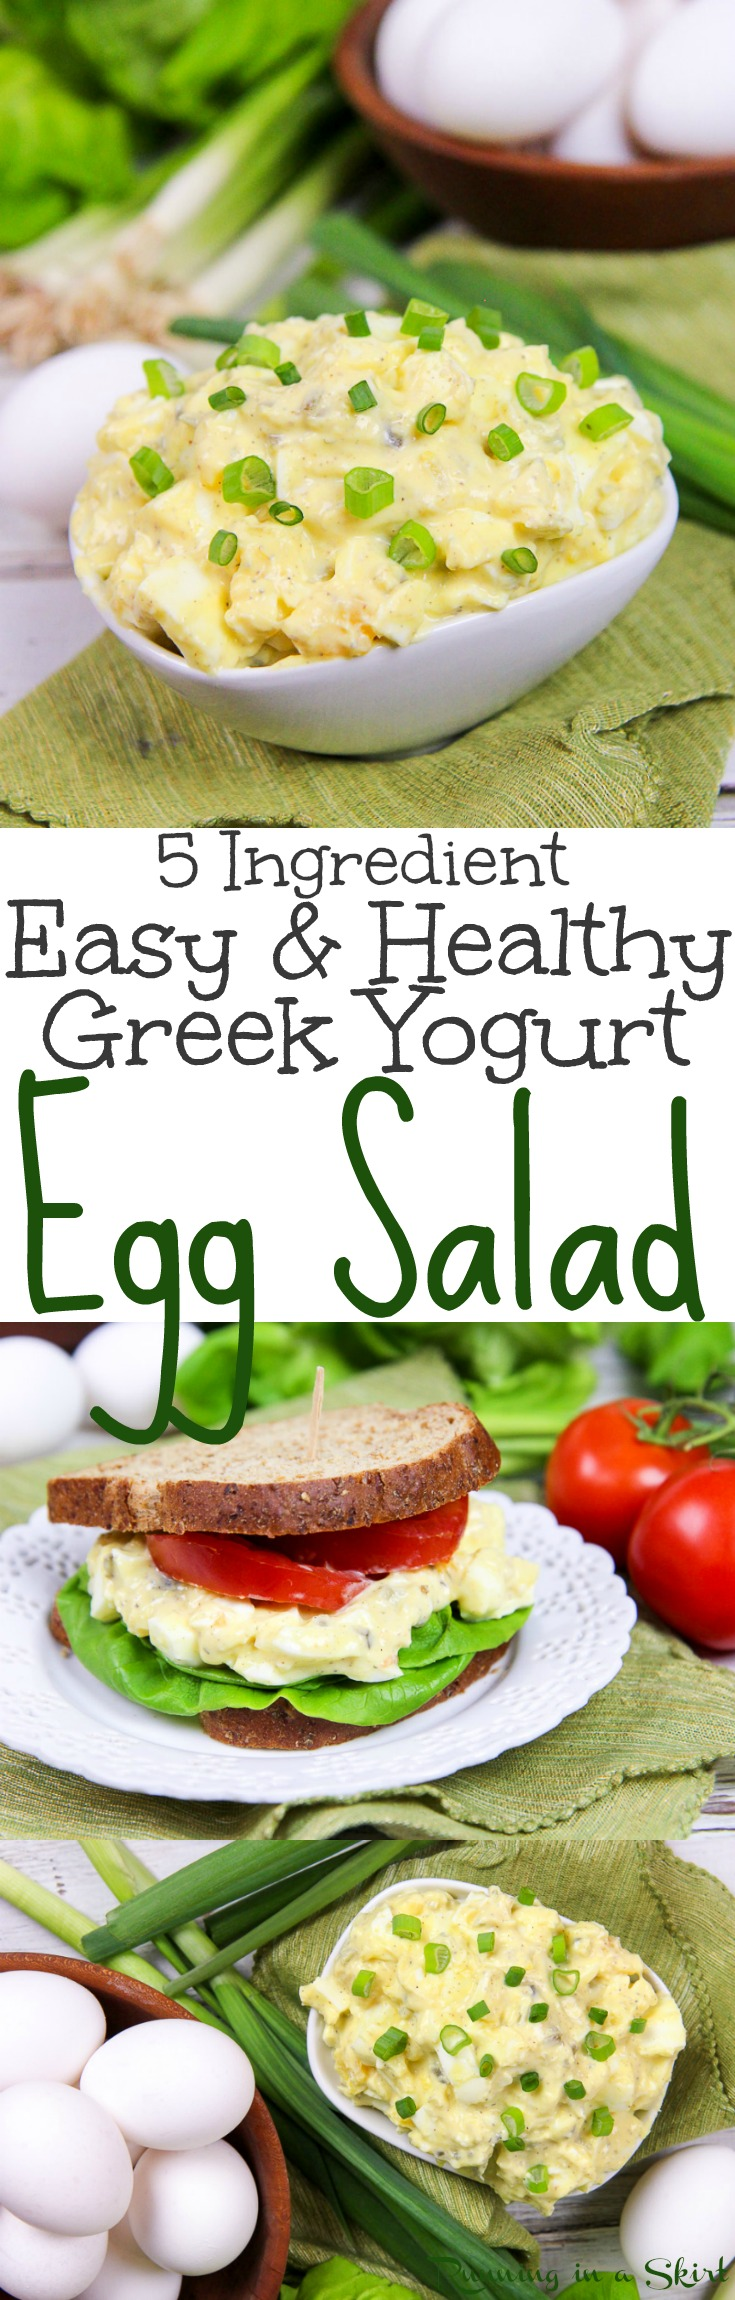 5 Ingredient Healthy (No Mayo!) Greek Yogurt Egg Salad recipe - An easy and simple vegetarian meal idea. Great for a sandwich, lunches, dinners and fun meals. Uses hard boiled eggs!  Low carb, vegetarian, gluten free and clean eating / Running in a Skirt via @juliewunder